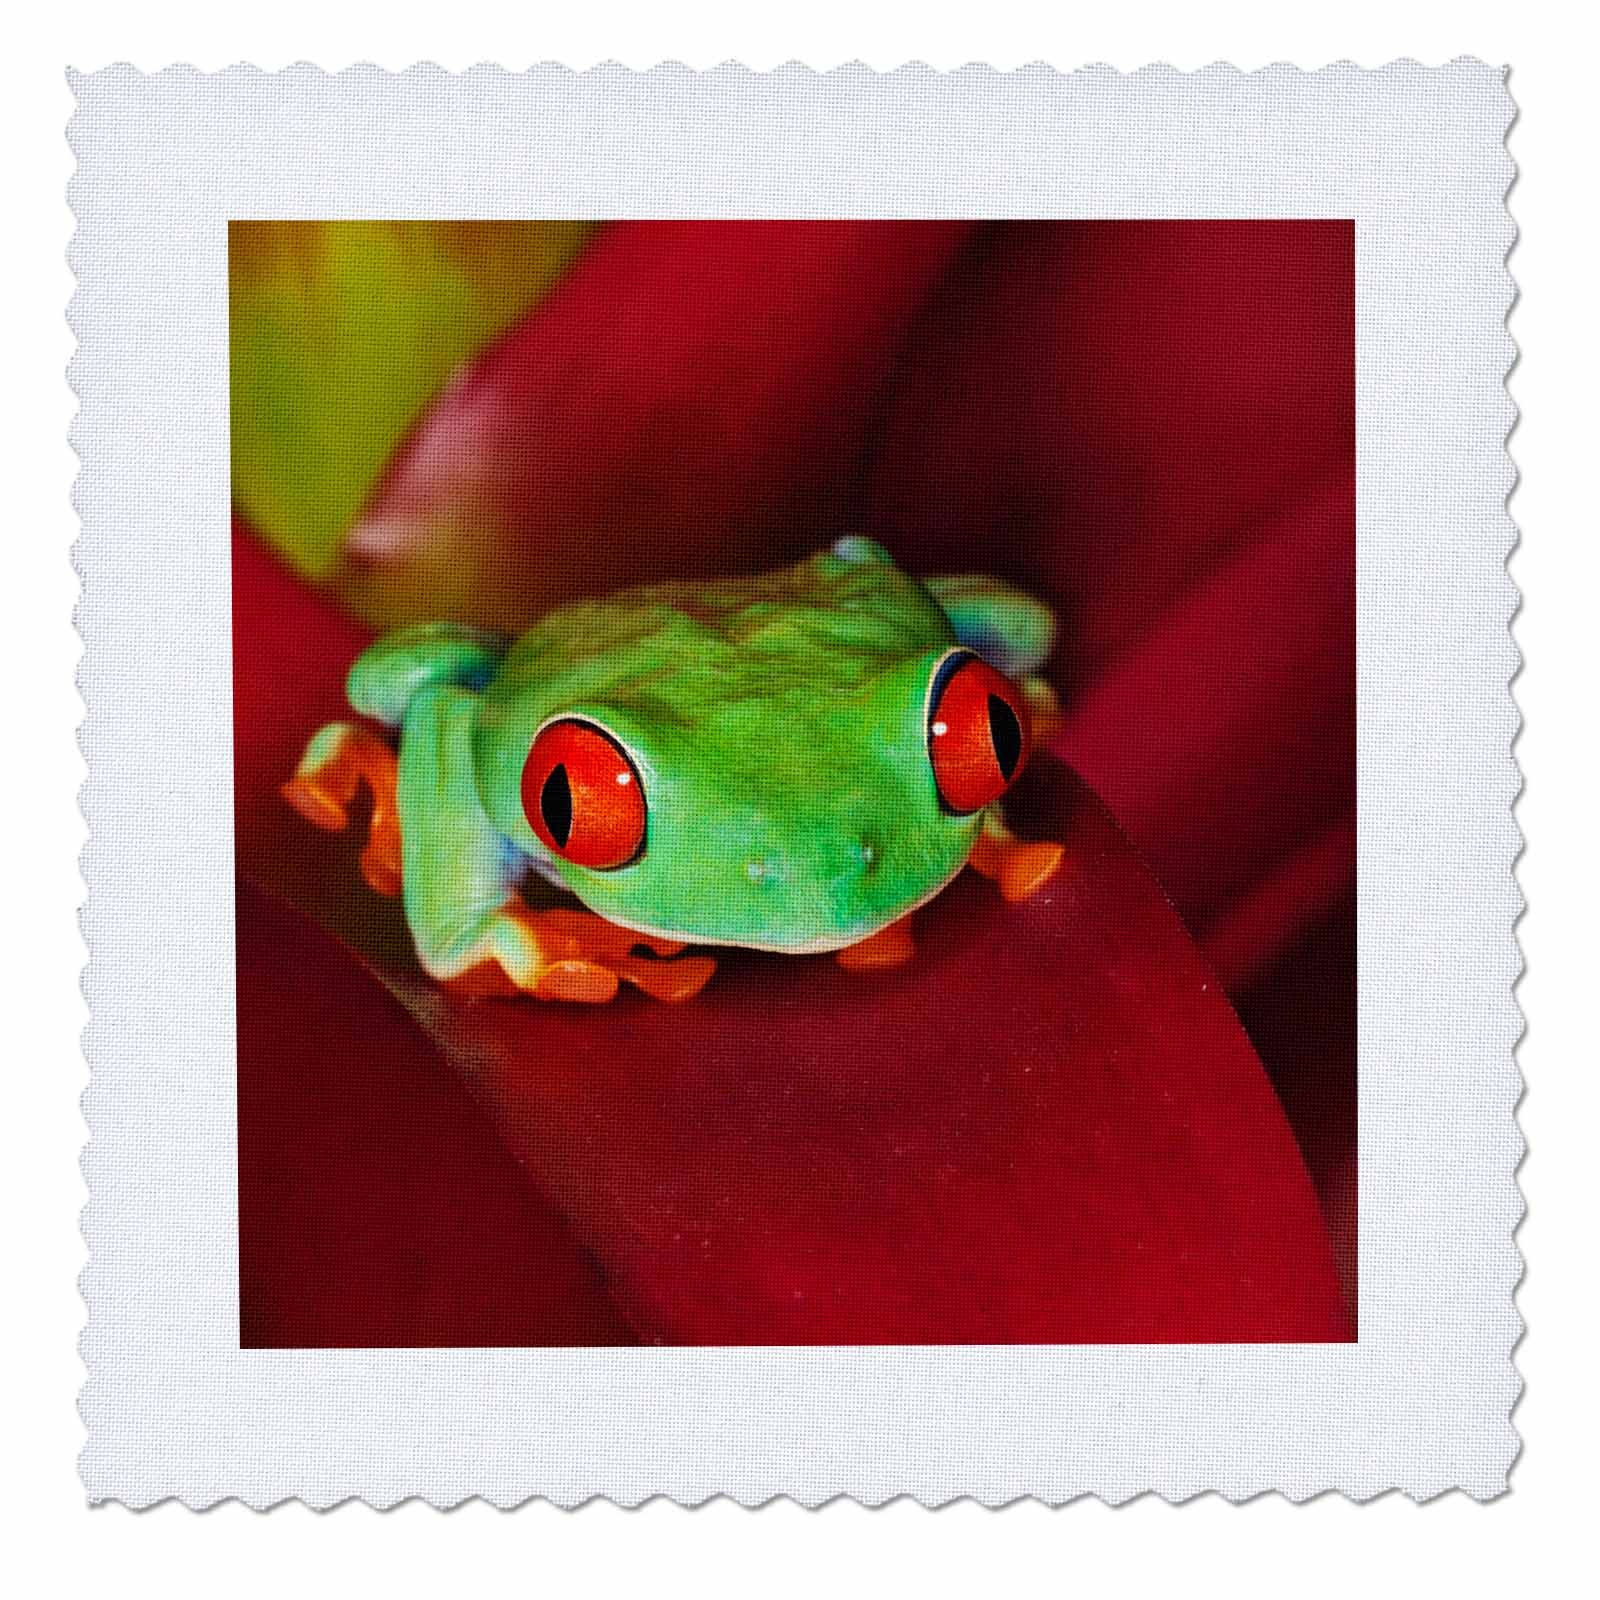 3dRose Danita Delimont - Frogs - South America, Panama. Red eyed tree frog. - 20x20 inch quilt square (qs_278319_8)